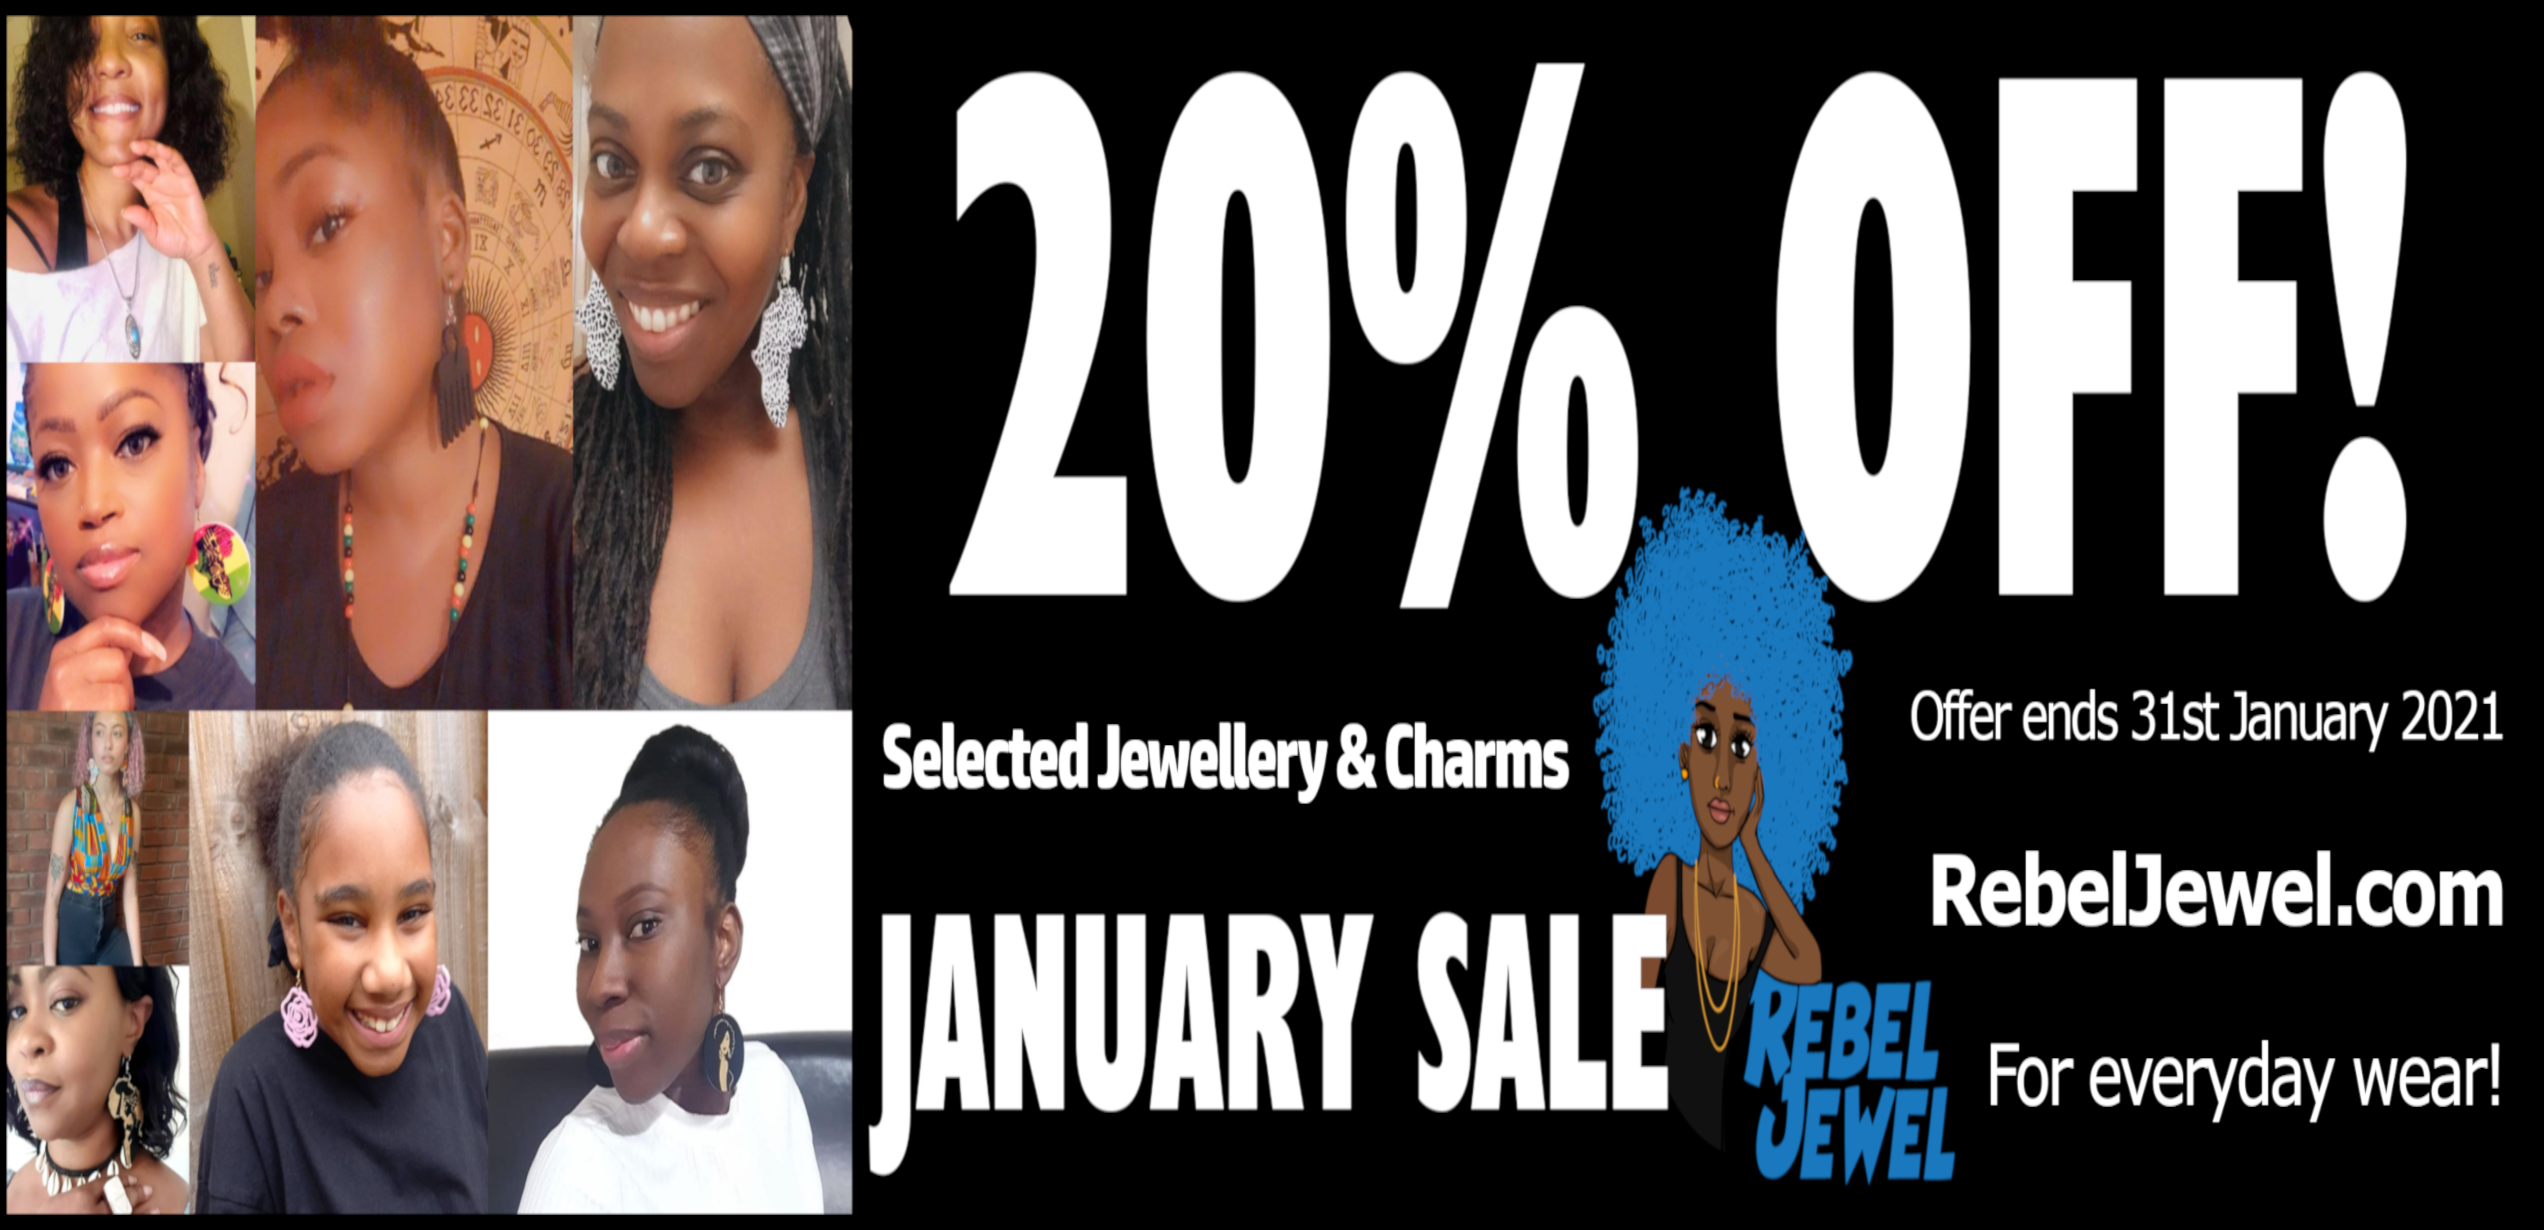 january sale 20 off rebel jewel jewellery charms africa ankh rasta earrings bracelets necklace